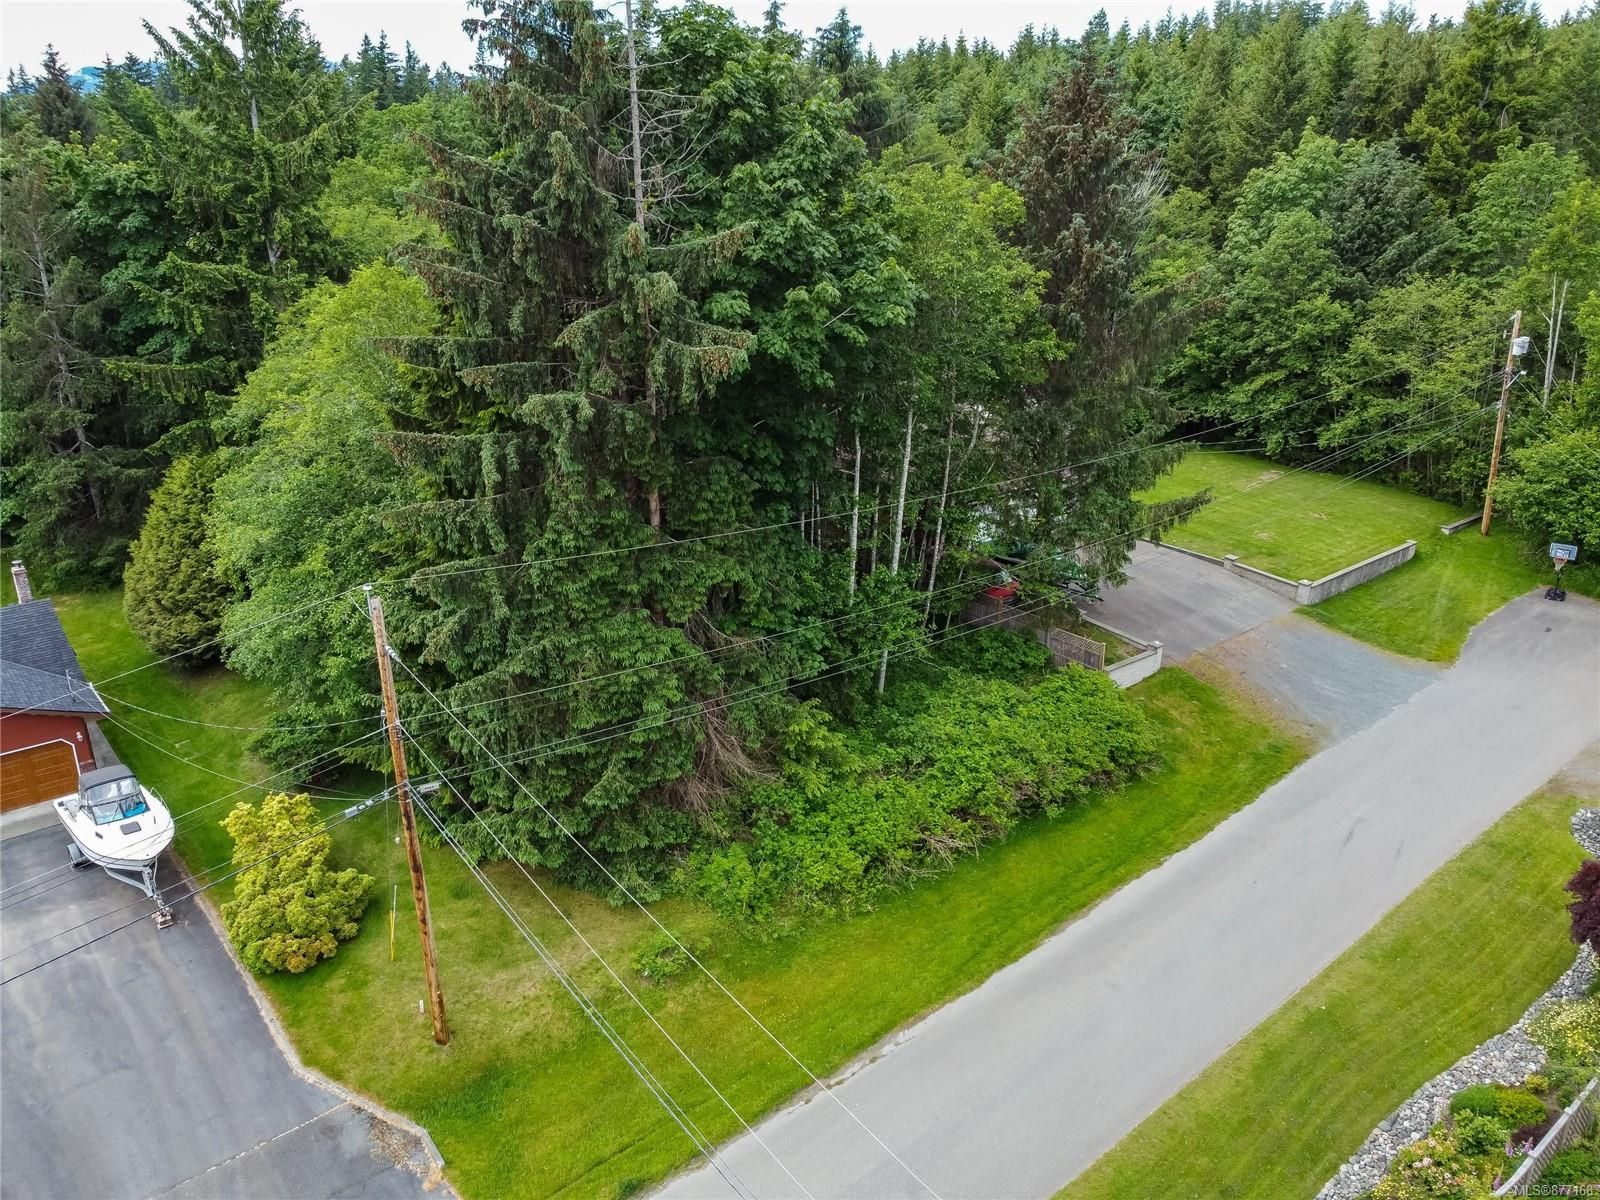 Main Photo: LT 8 Redonda Way in : CR Campbell River South Land for sale (Campbell River)  : MLS®# 877168